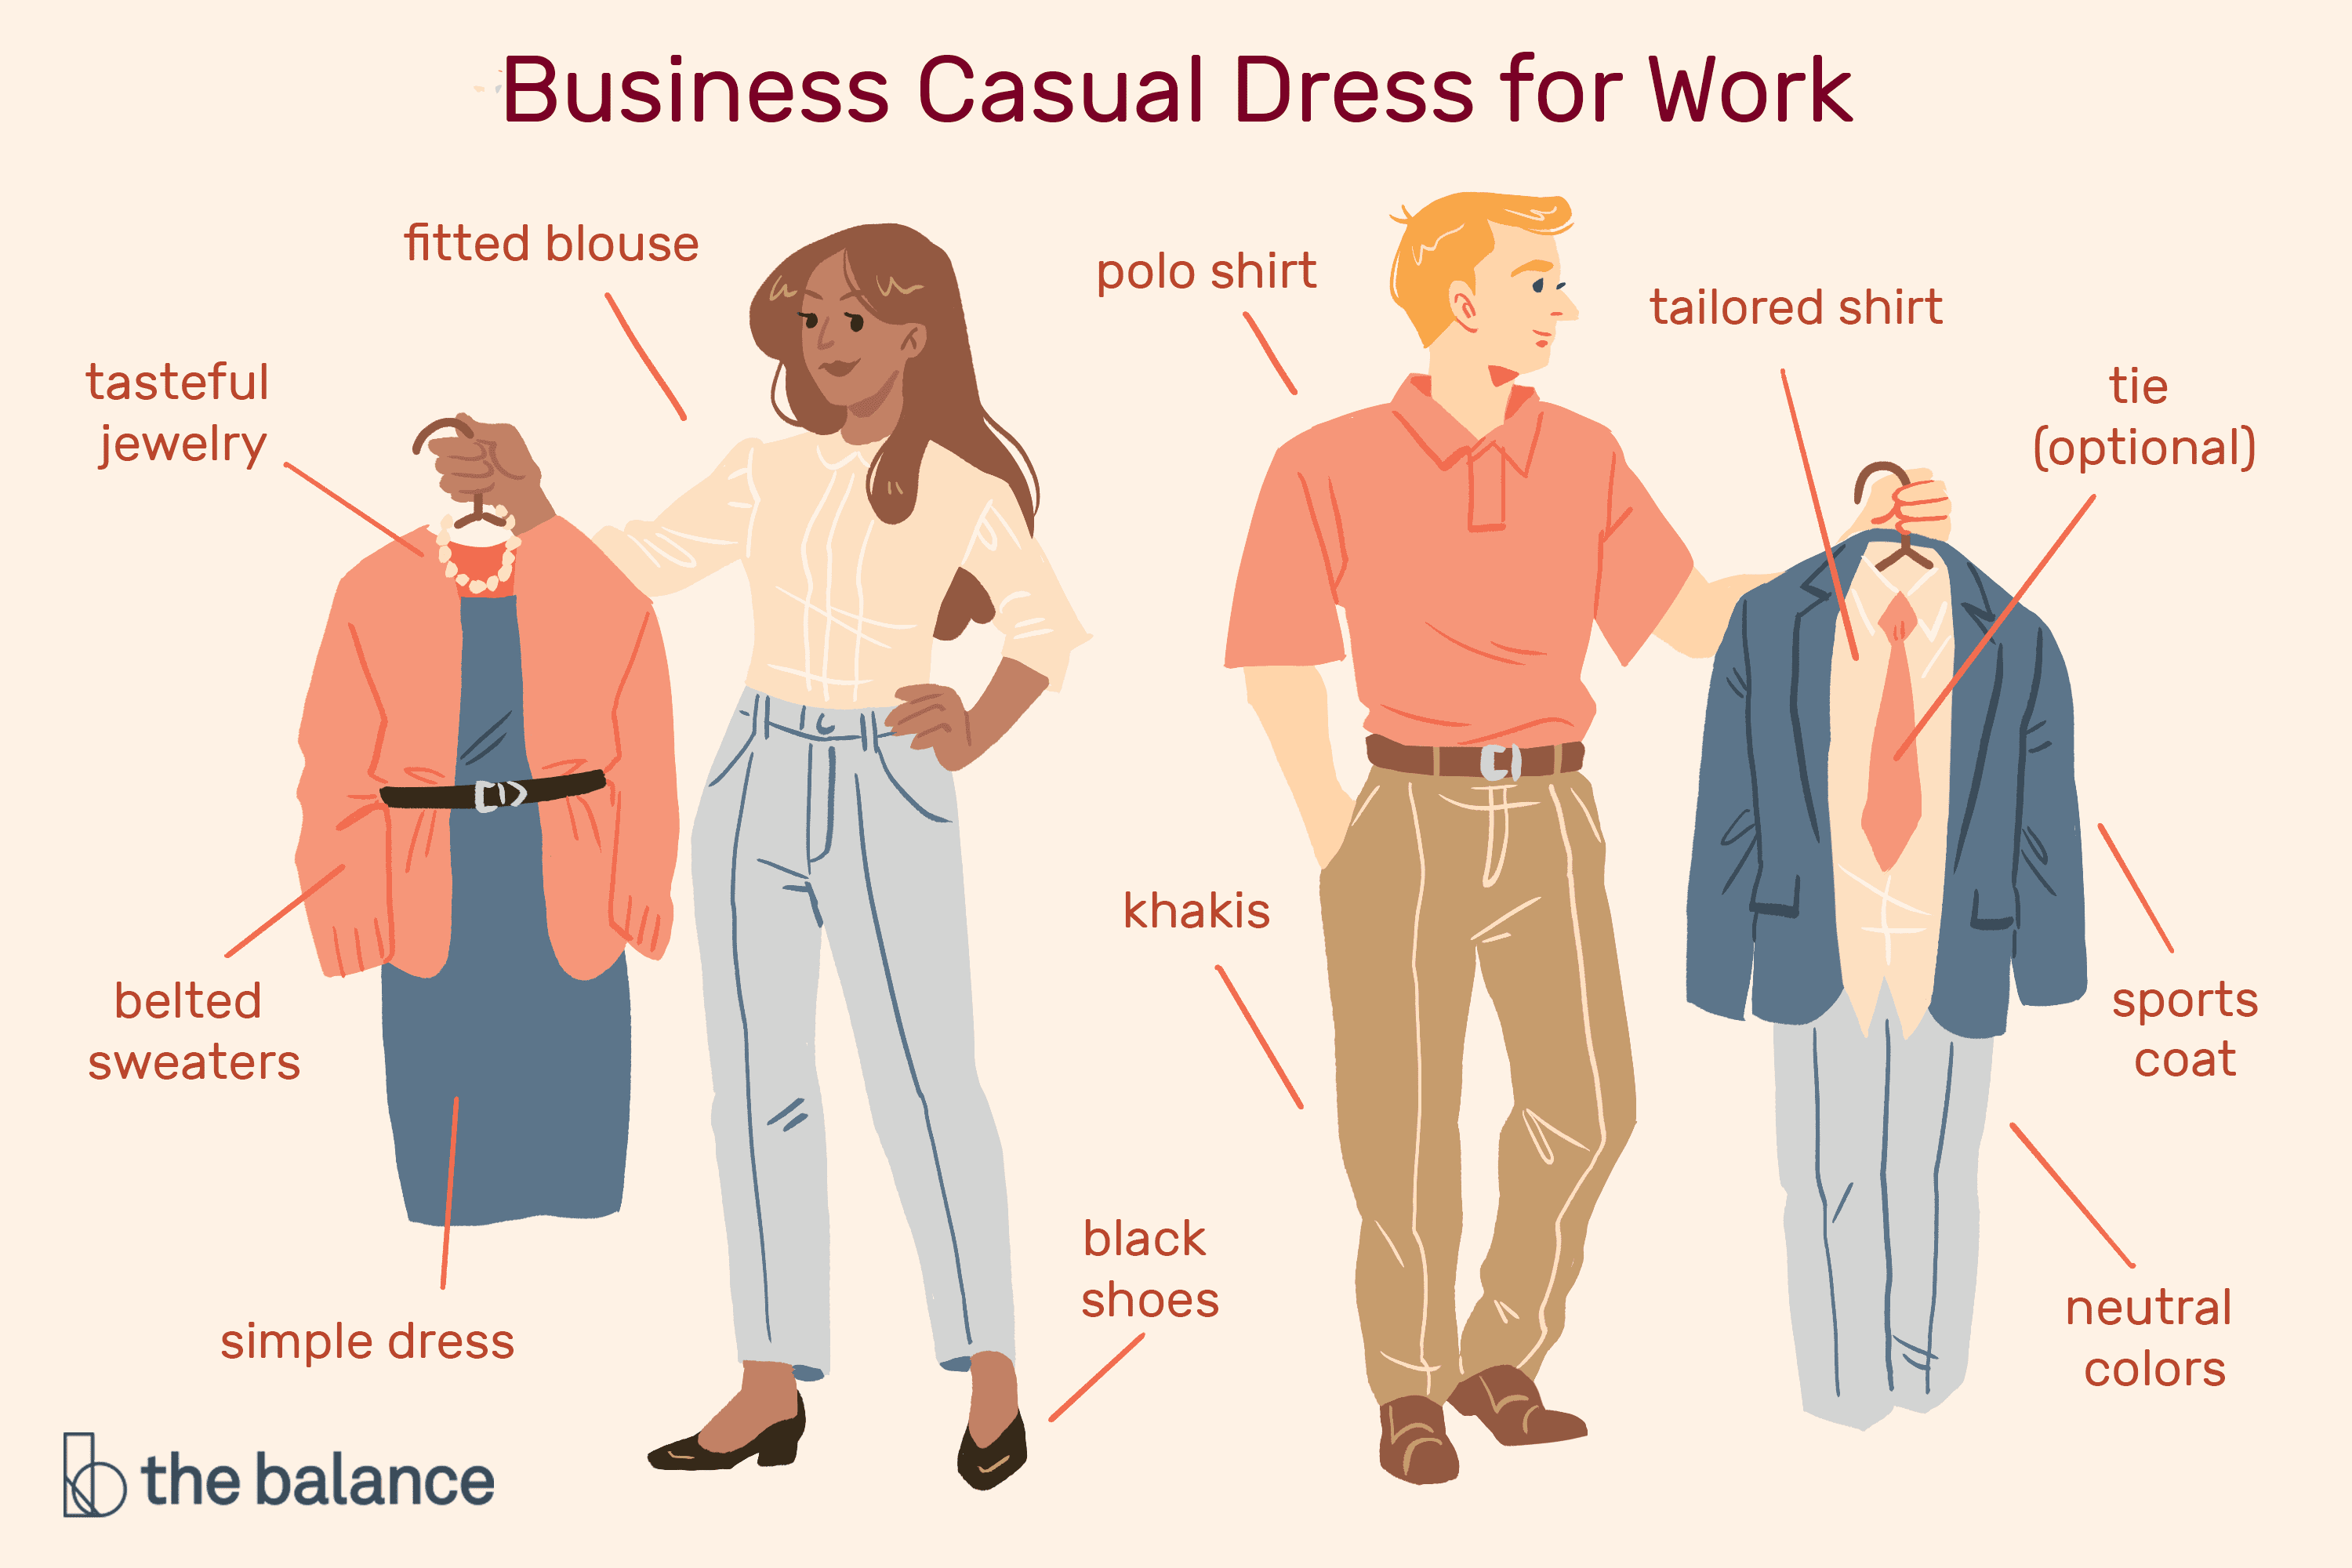 4428d7be682 Images of Business Casual Dress for the Workplace